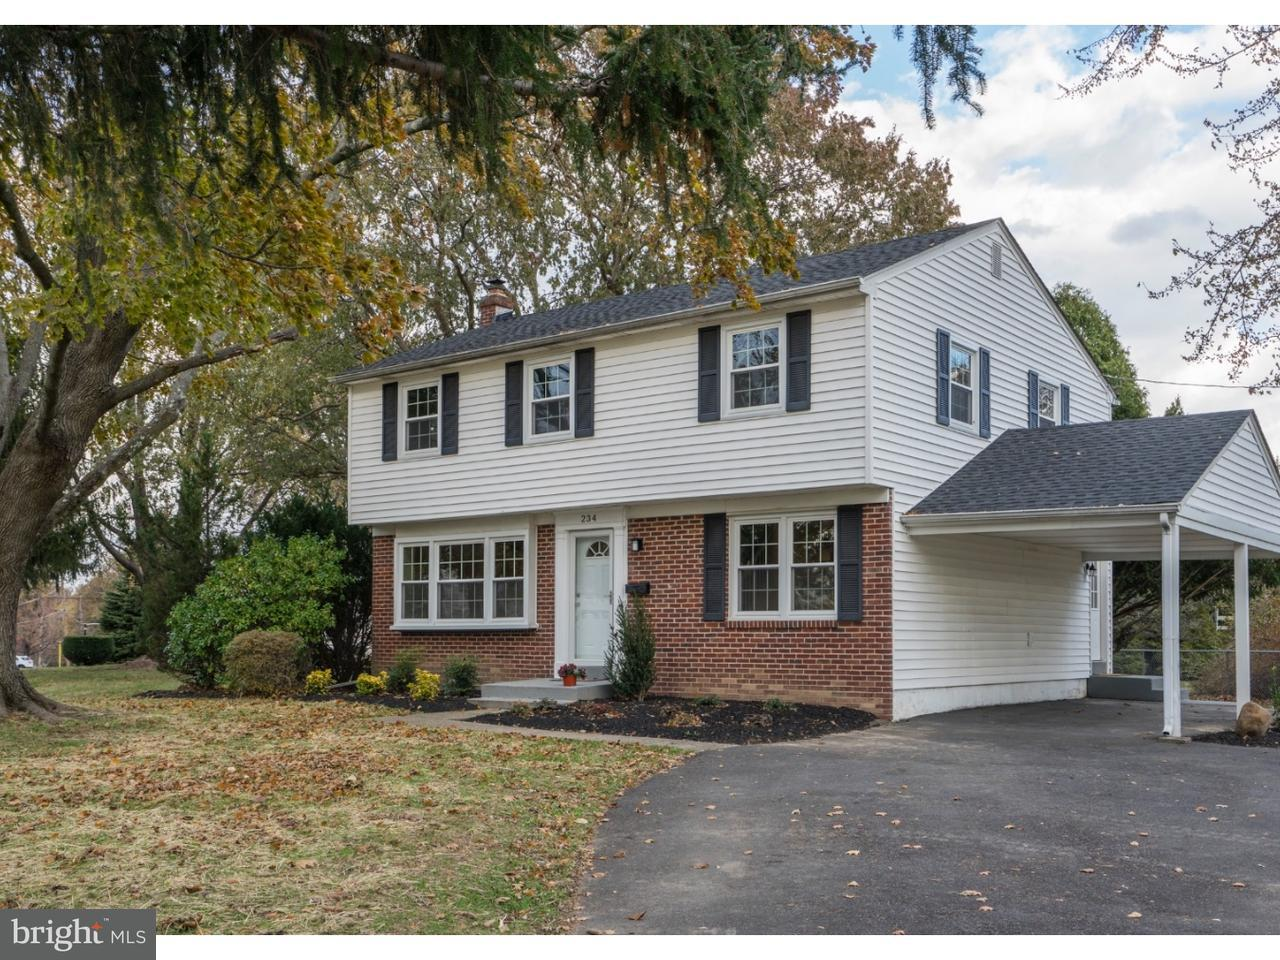 Single Family Home for Sale at 234 CRESTVIEW Road Hatboro, Pennsylvania 19040 United States